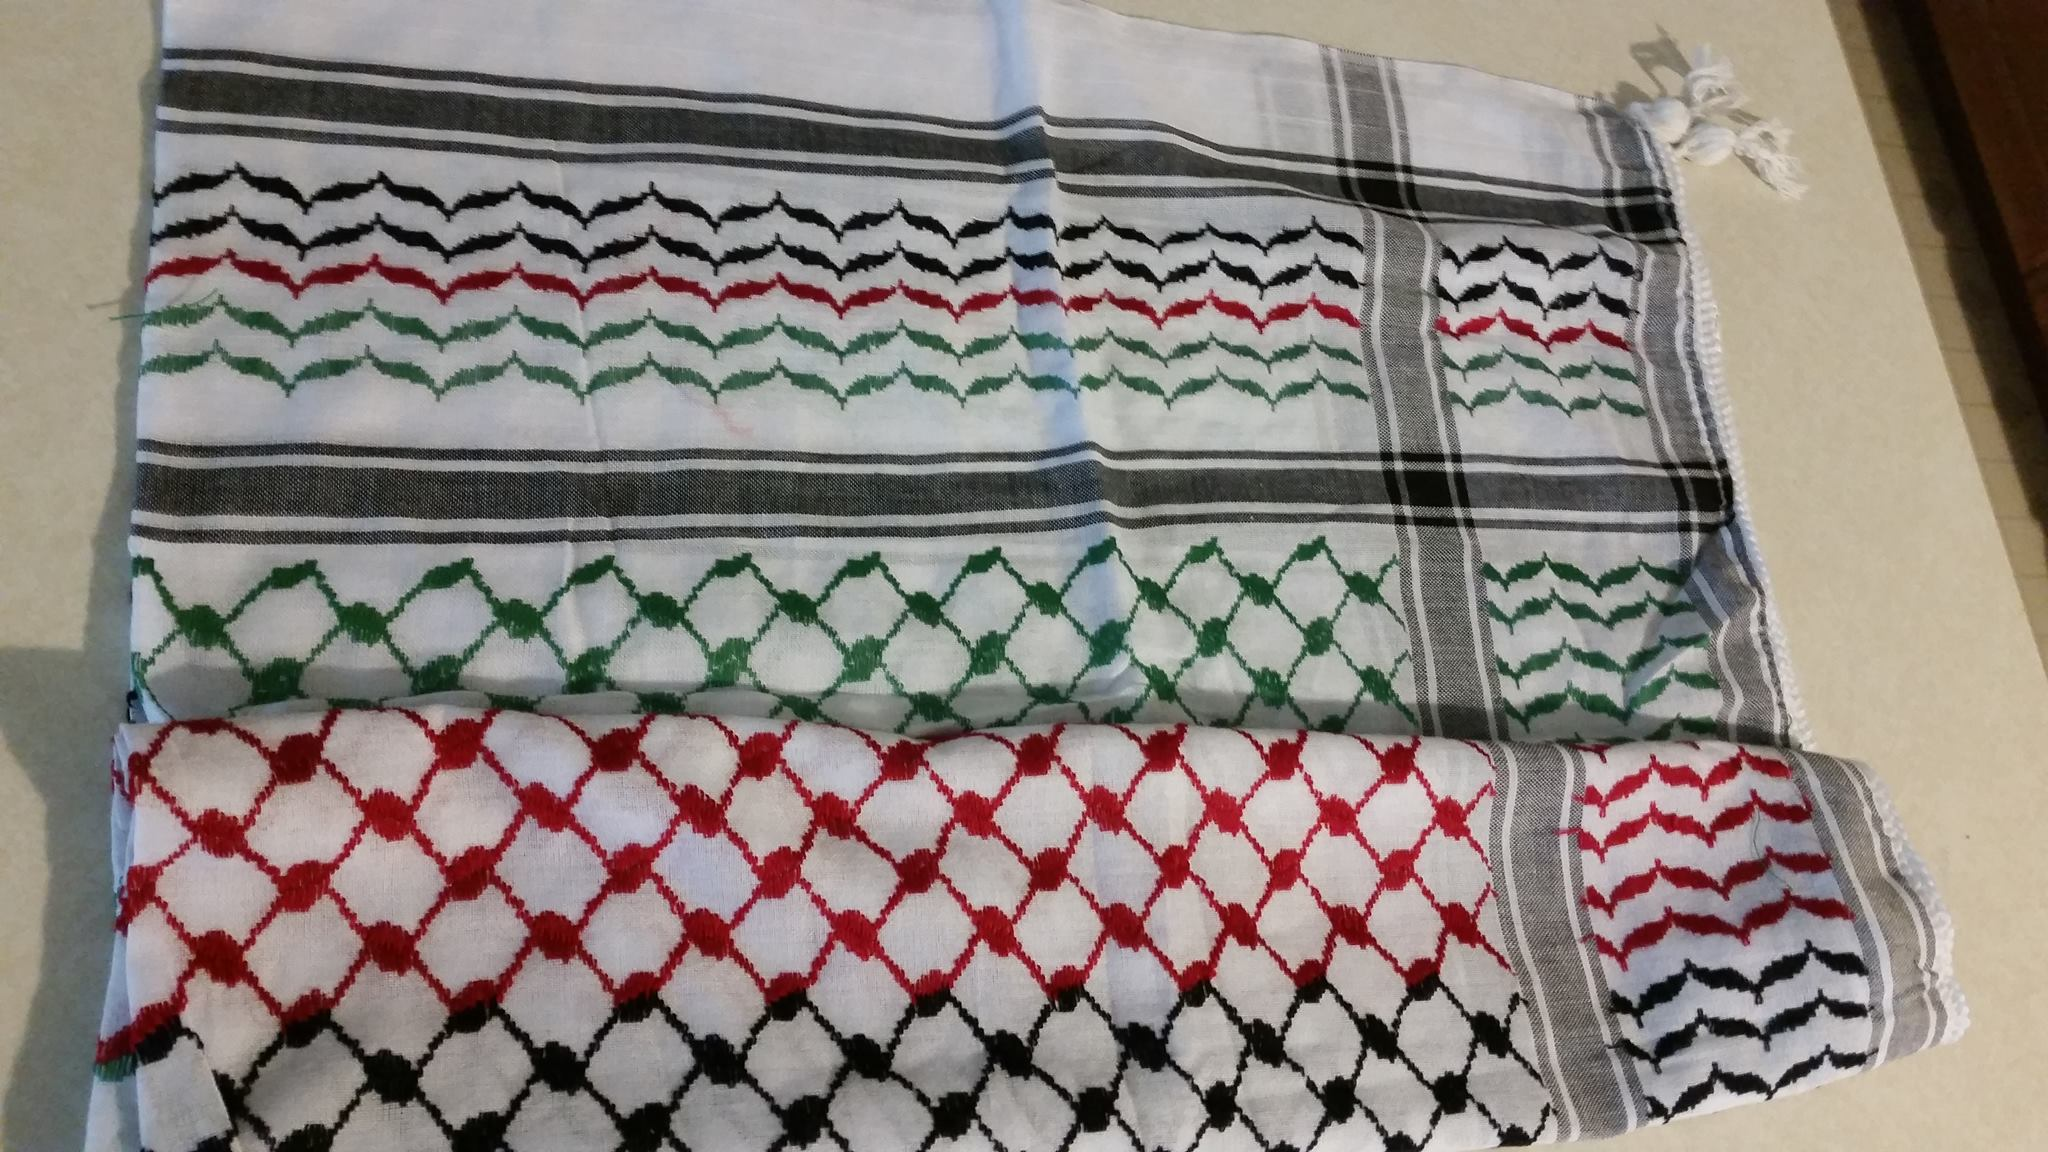 On the Keffiyeh, Palestine, Solidarity, and Cultural Appropriation